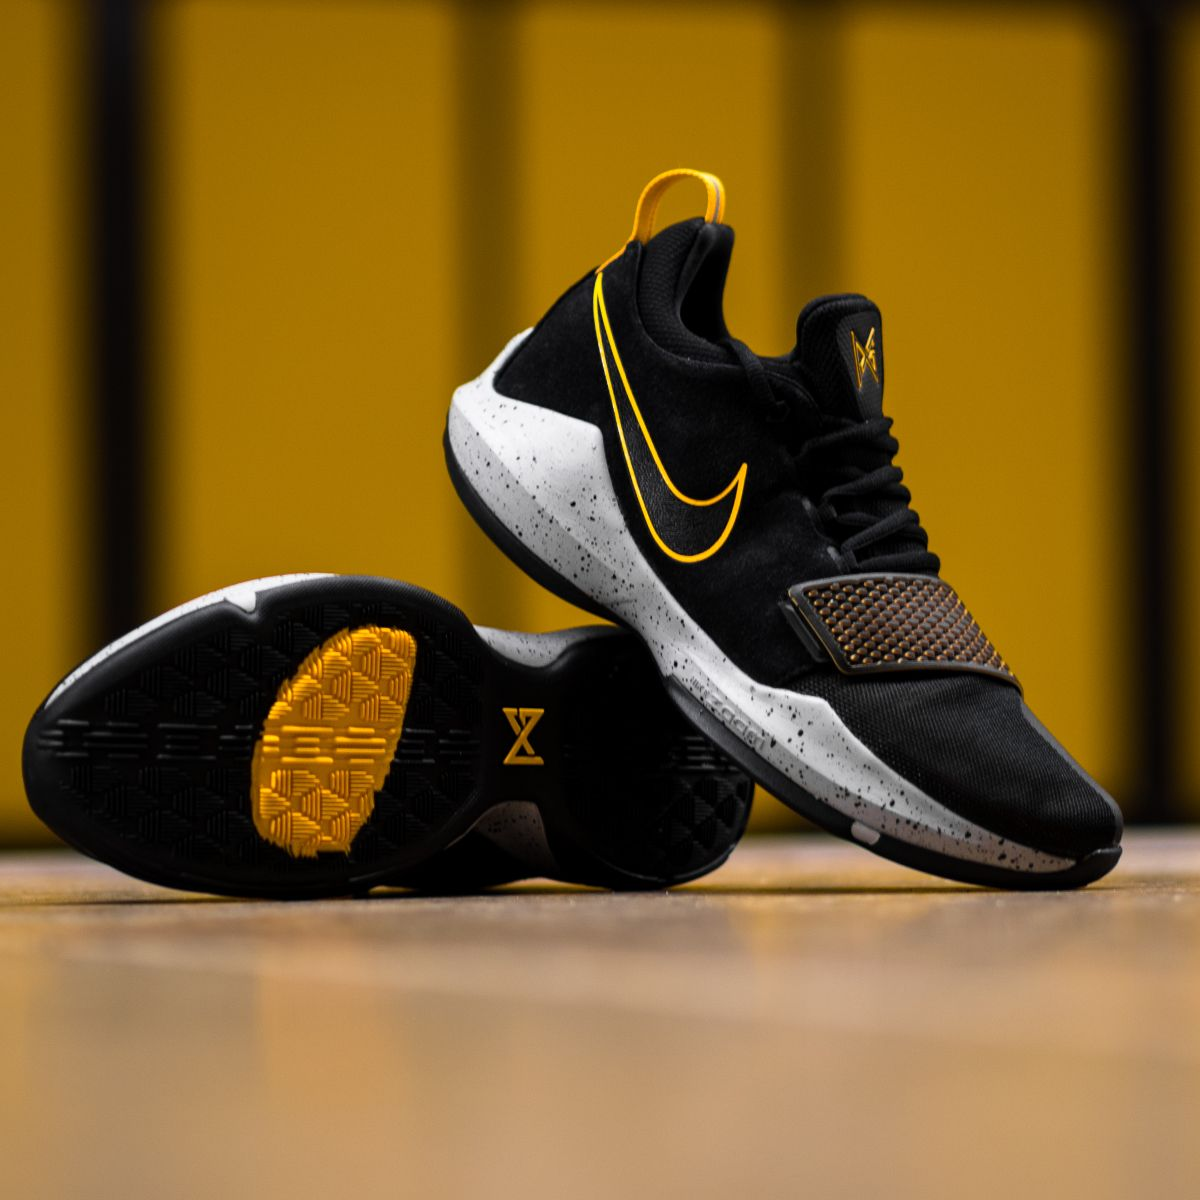 detailed look 4b0bf f7258 Paul George s latest signature shoe is available now on KICKZ.com and in  our stores! Ballin !